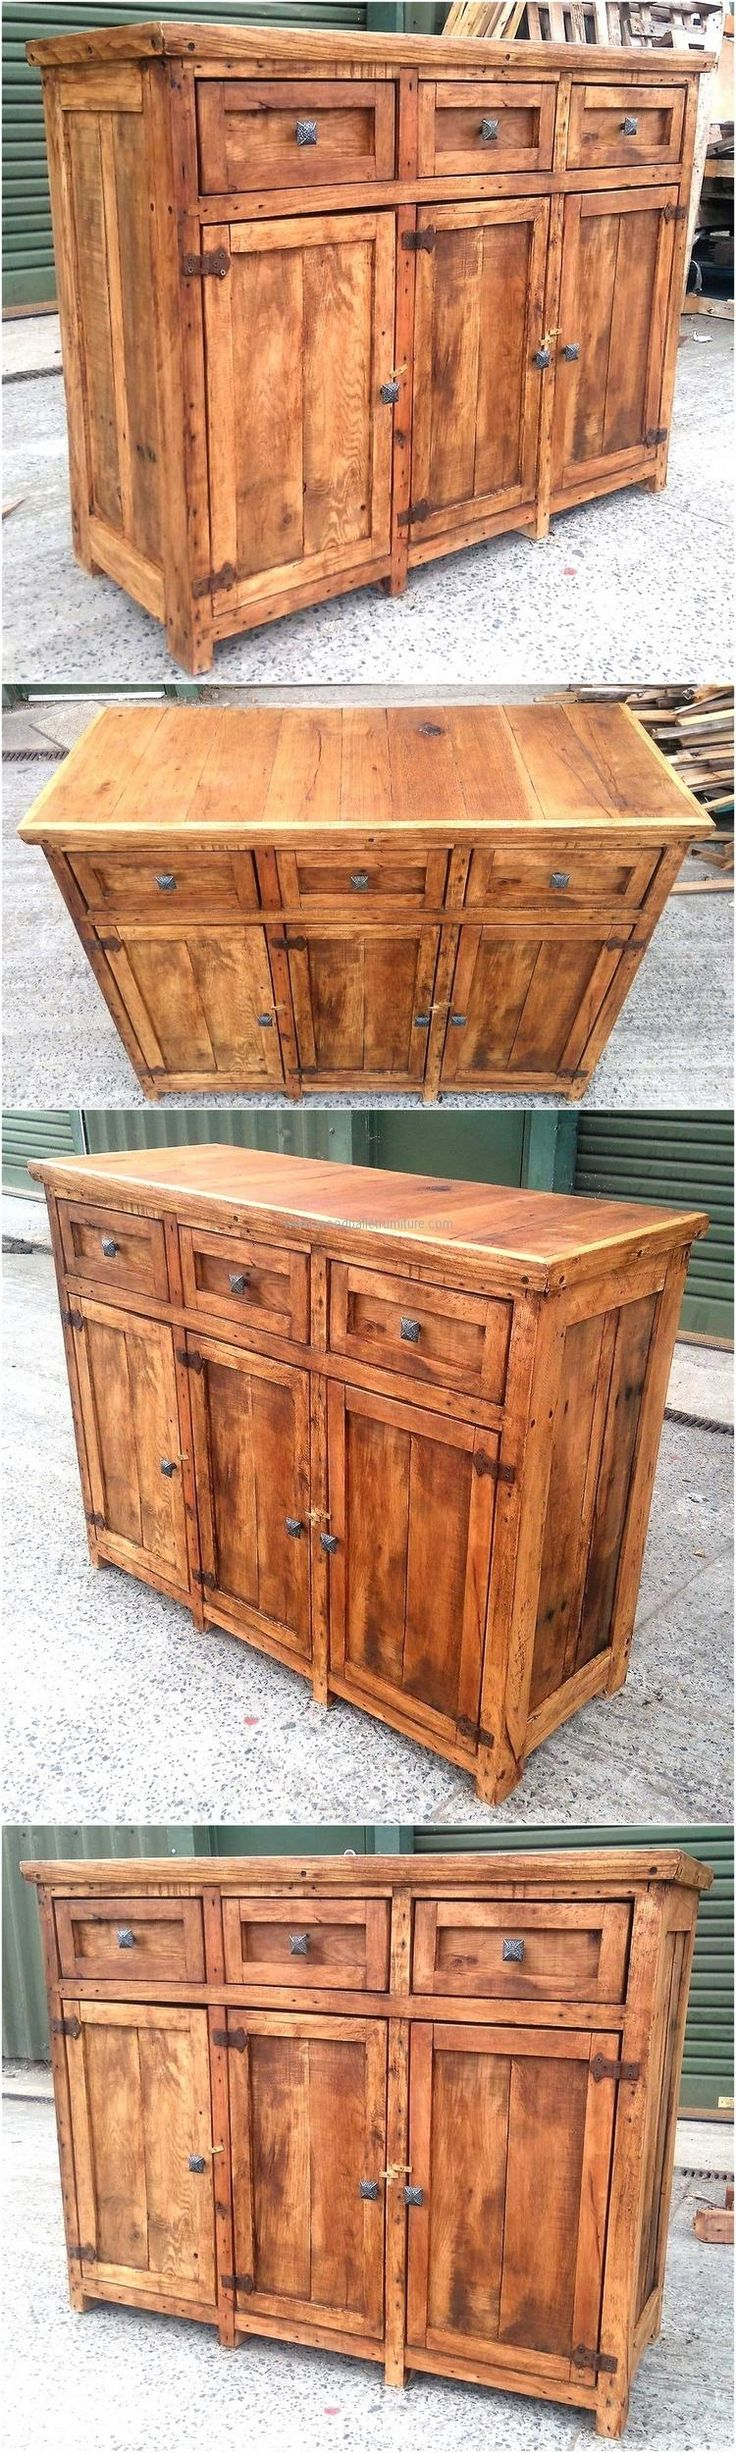 A different idea to create the wood pallet chest of drawers, this idea contains the small as well as big drawers. The items of different sizes can be placed in it and the decorative items placed over the rustic look chest of drawers will make the area look attractive.